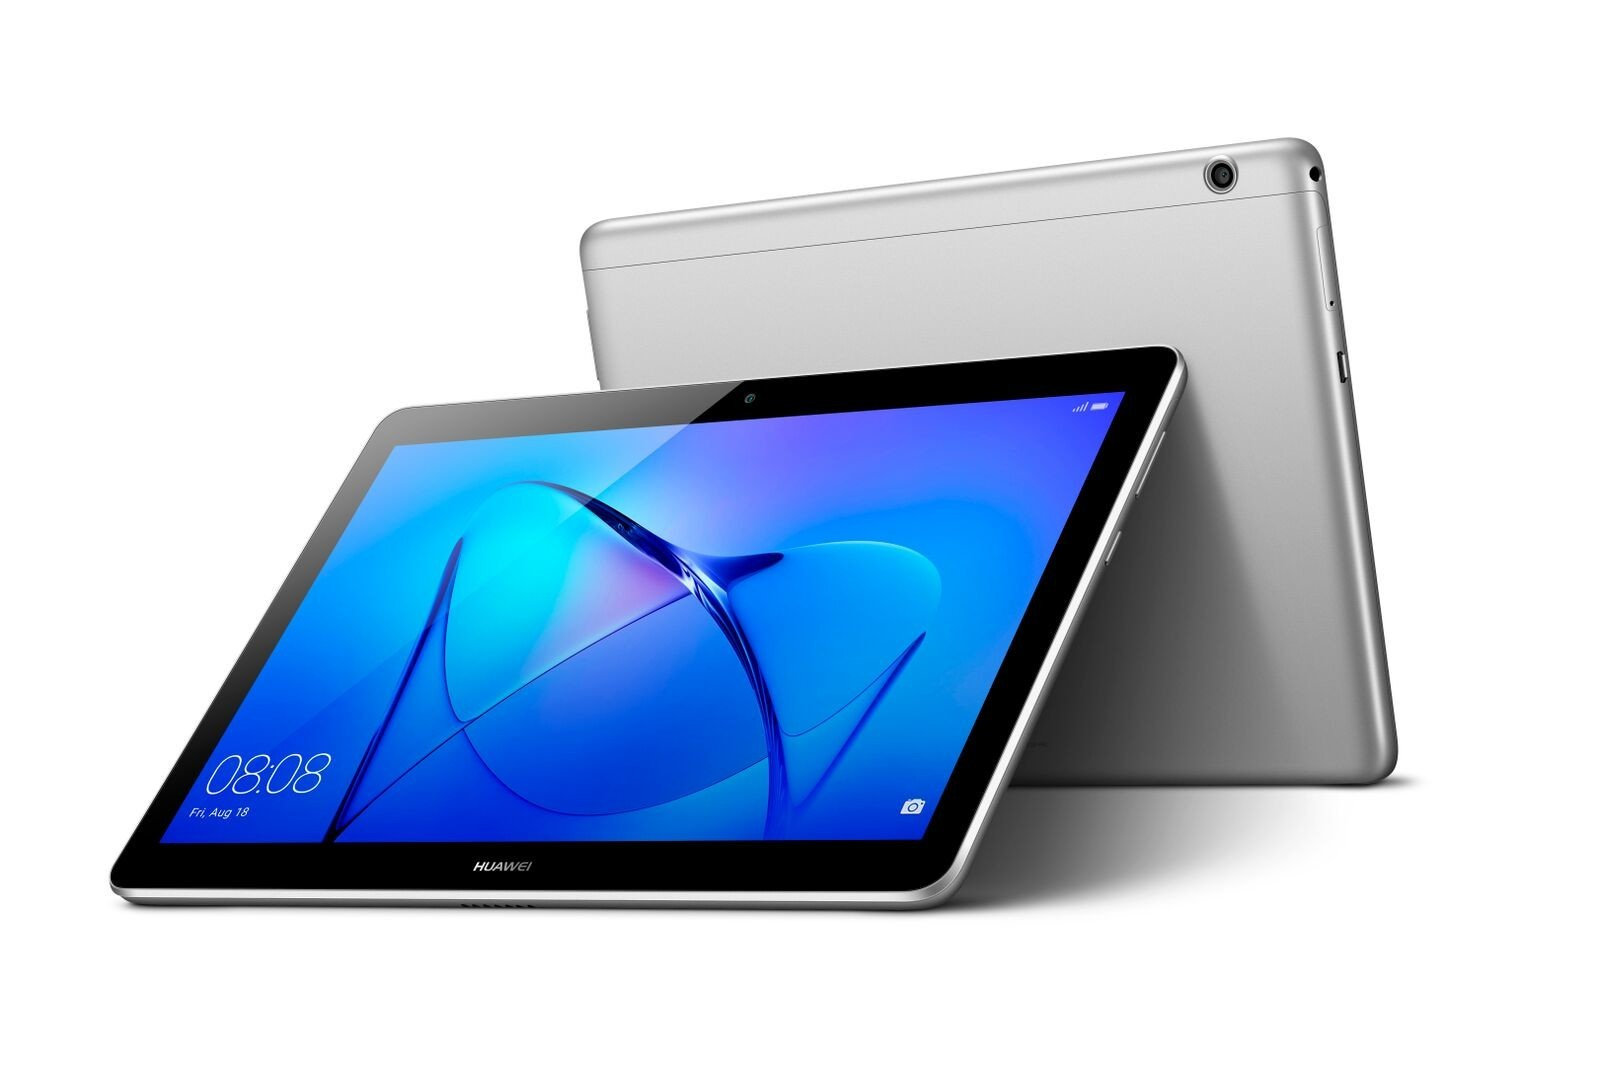 Huawei media tab s7 16gb